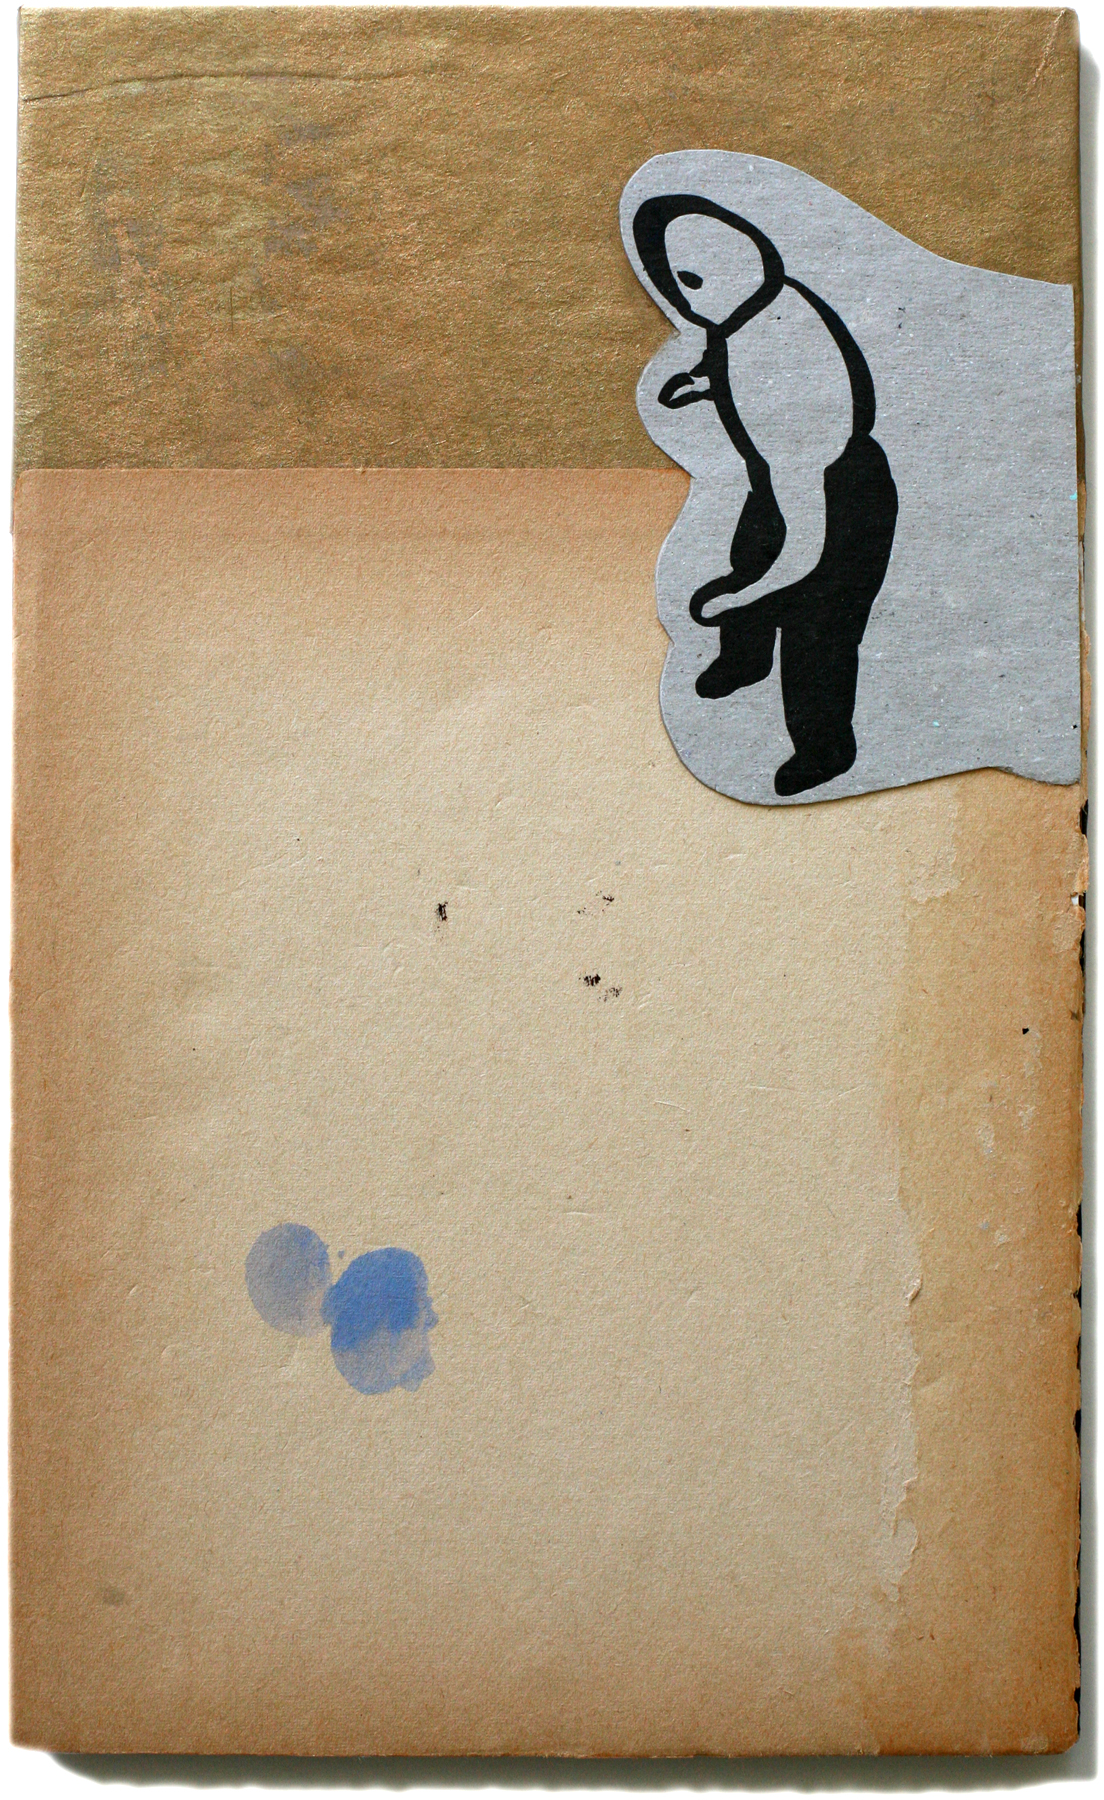 """Referee, 10"""" x 6"""", 2008-2010 (private collection)"""